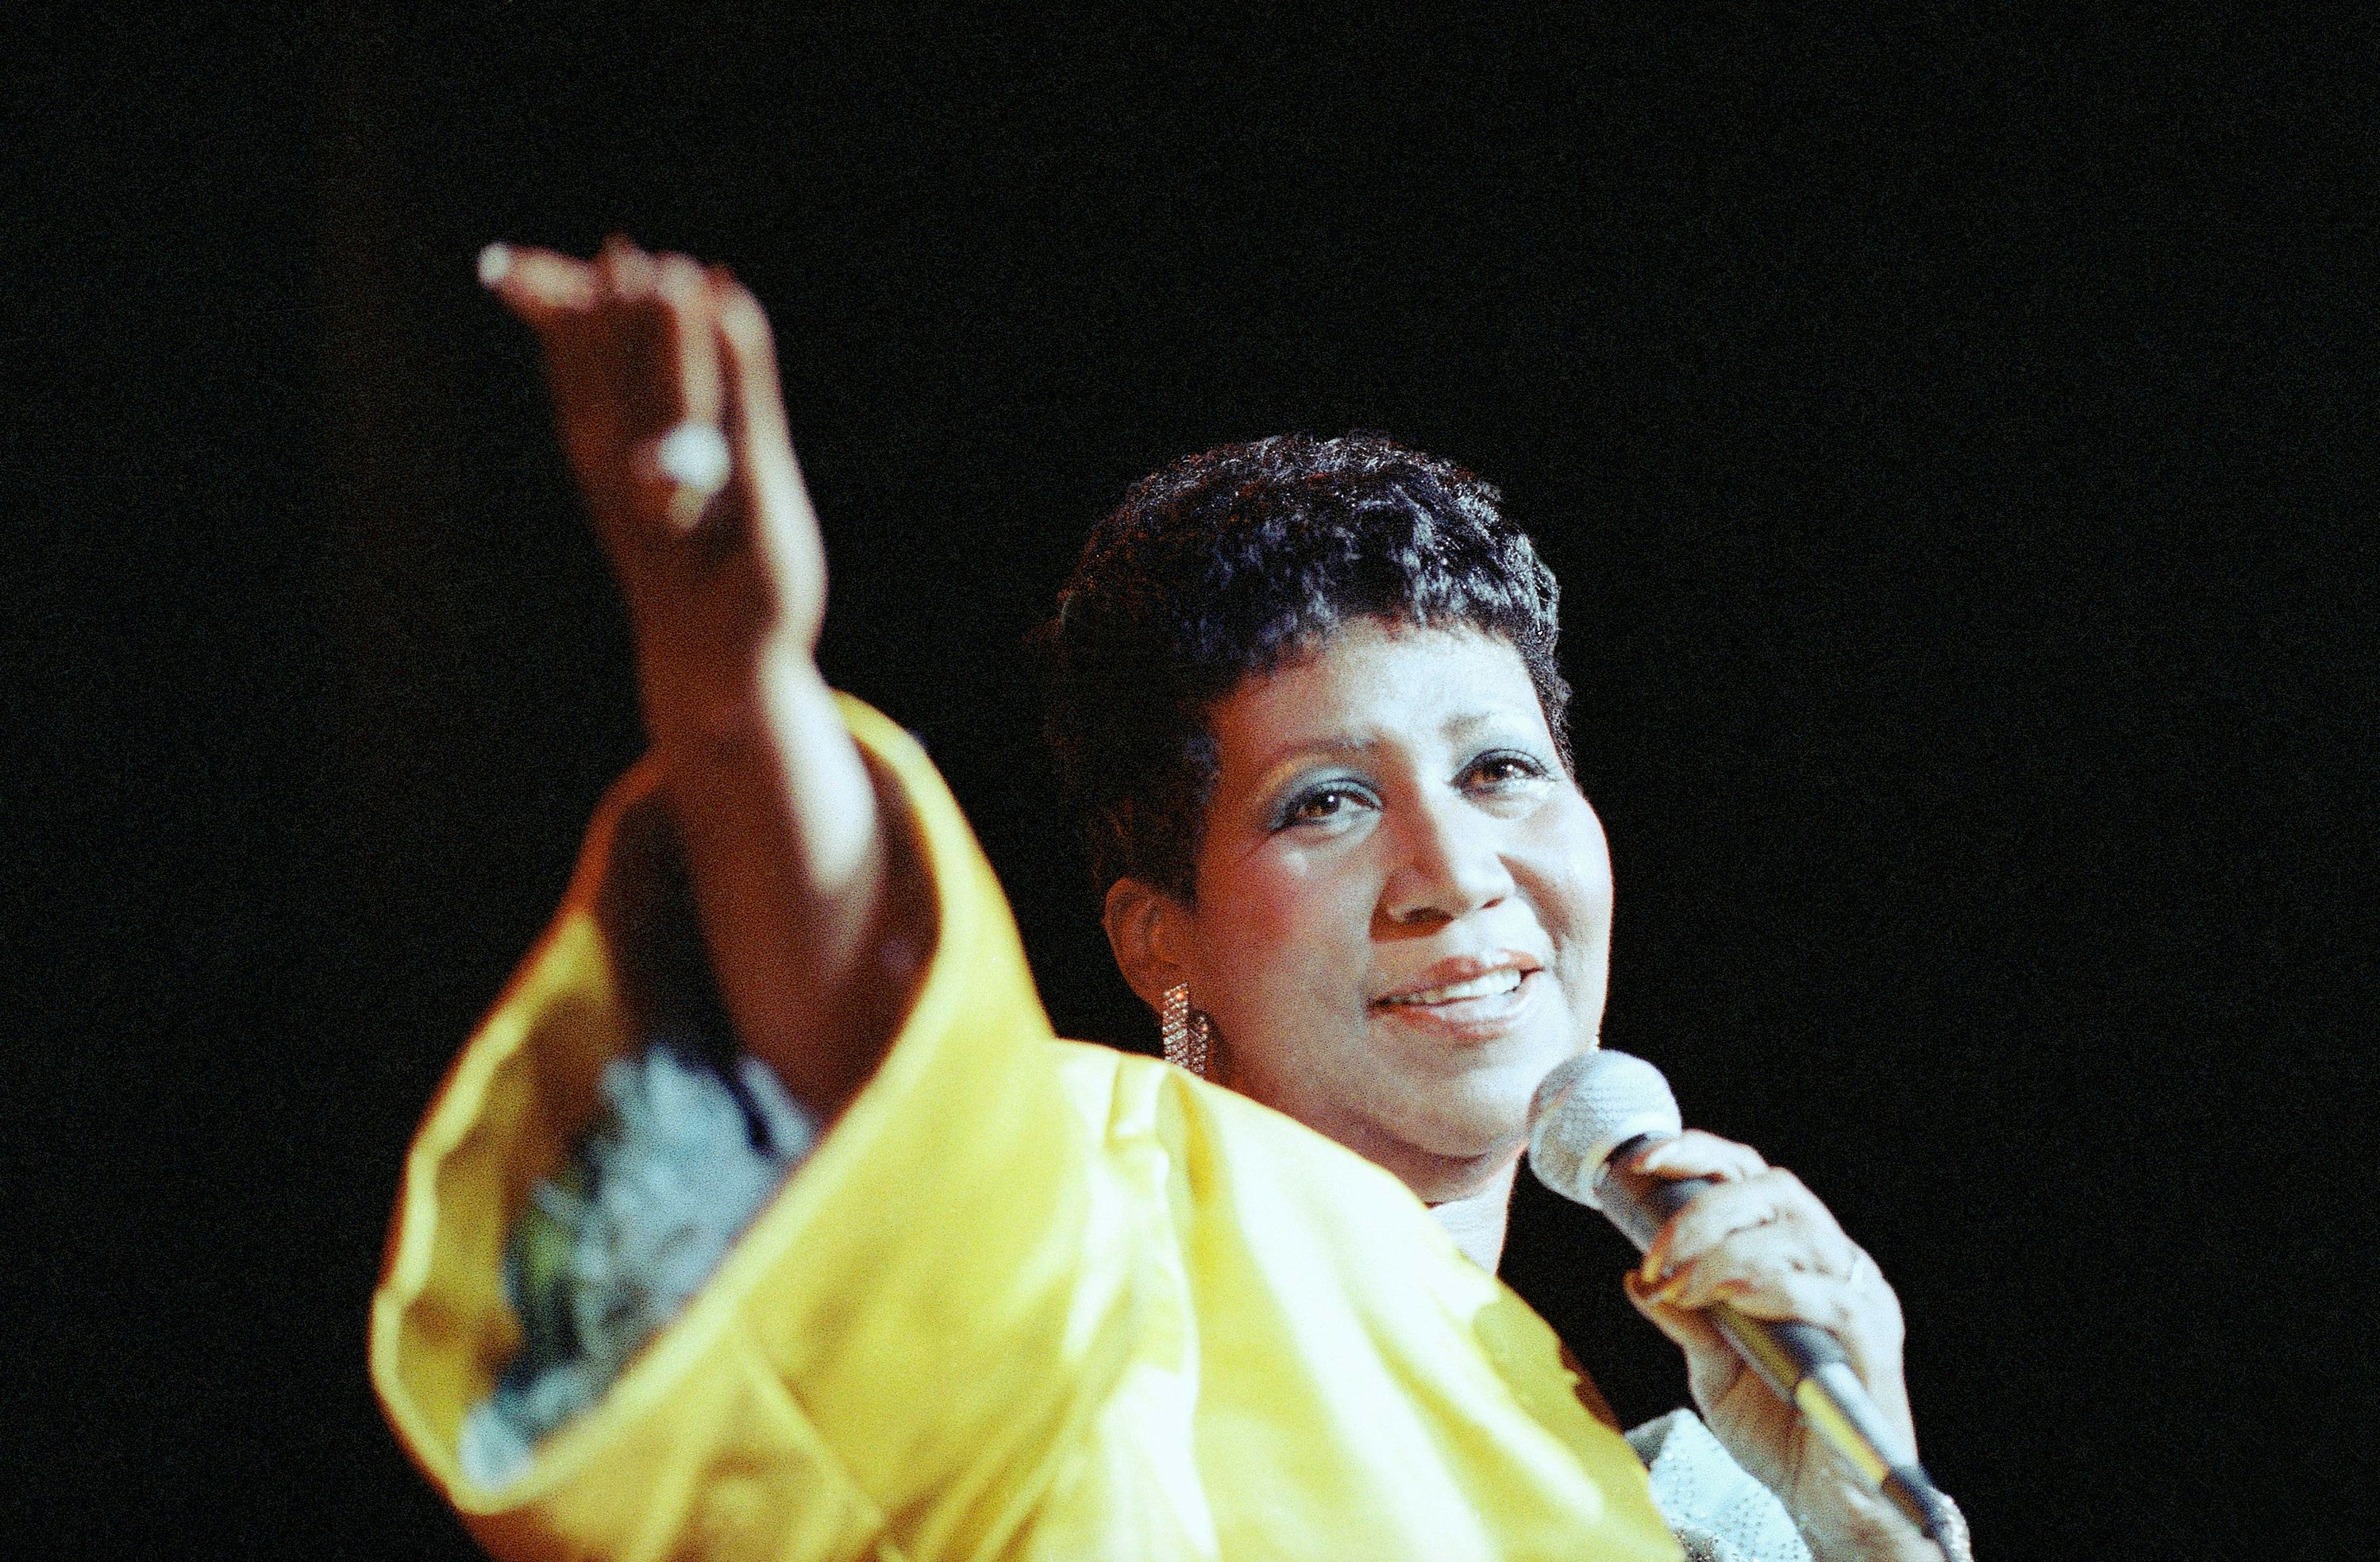 Among Aretha Franklin's most famous hits was her signature song,